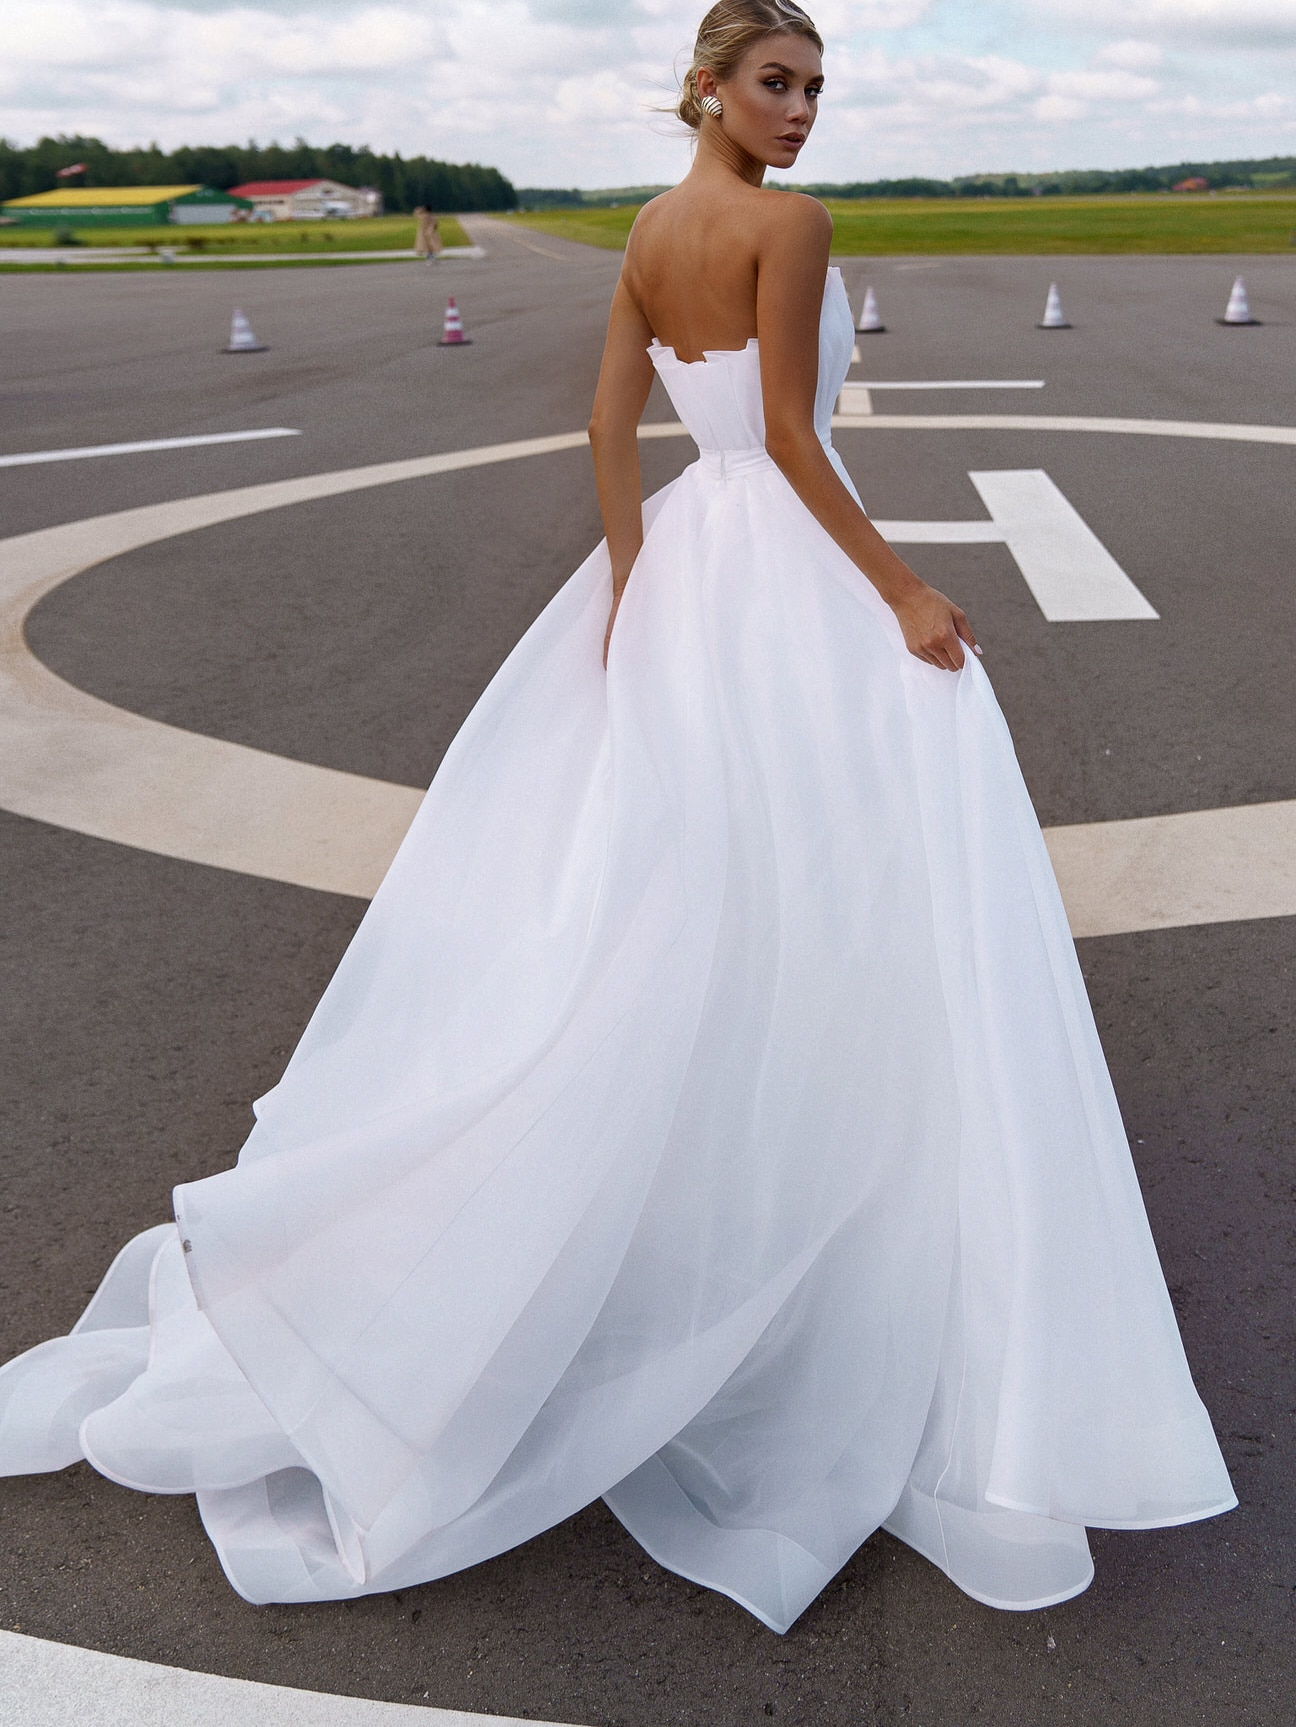 Strapless Simple Pleated Wedding Dress Princess Half Latern Sleeves Plus Size Zipper Low Cut 2021 Beach Outdoor Bridal Gowns